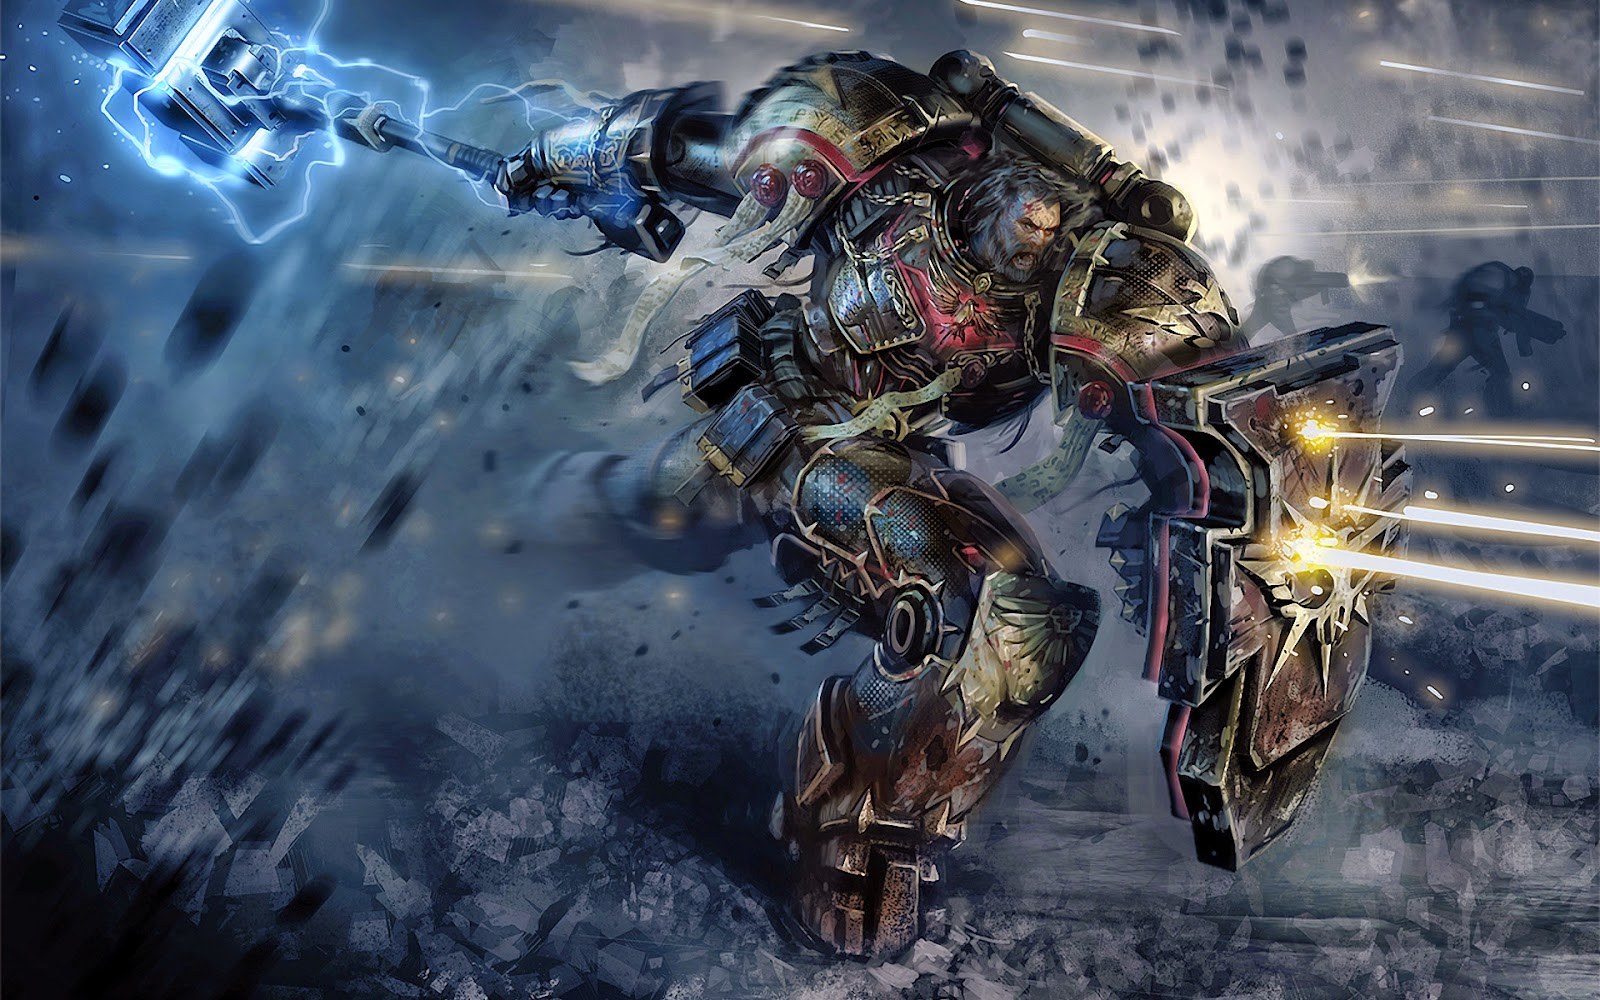 Warhammer Wallpapers HD Desktop Wallpapers wallpapers